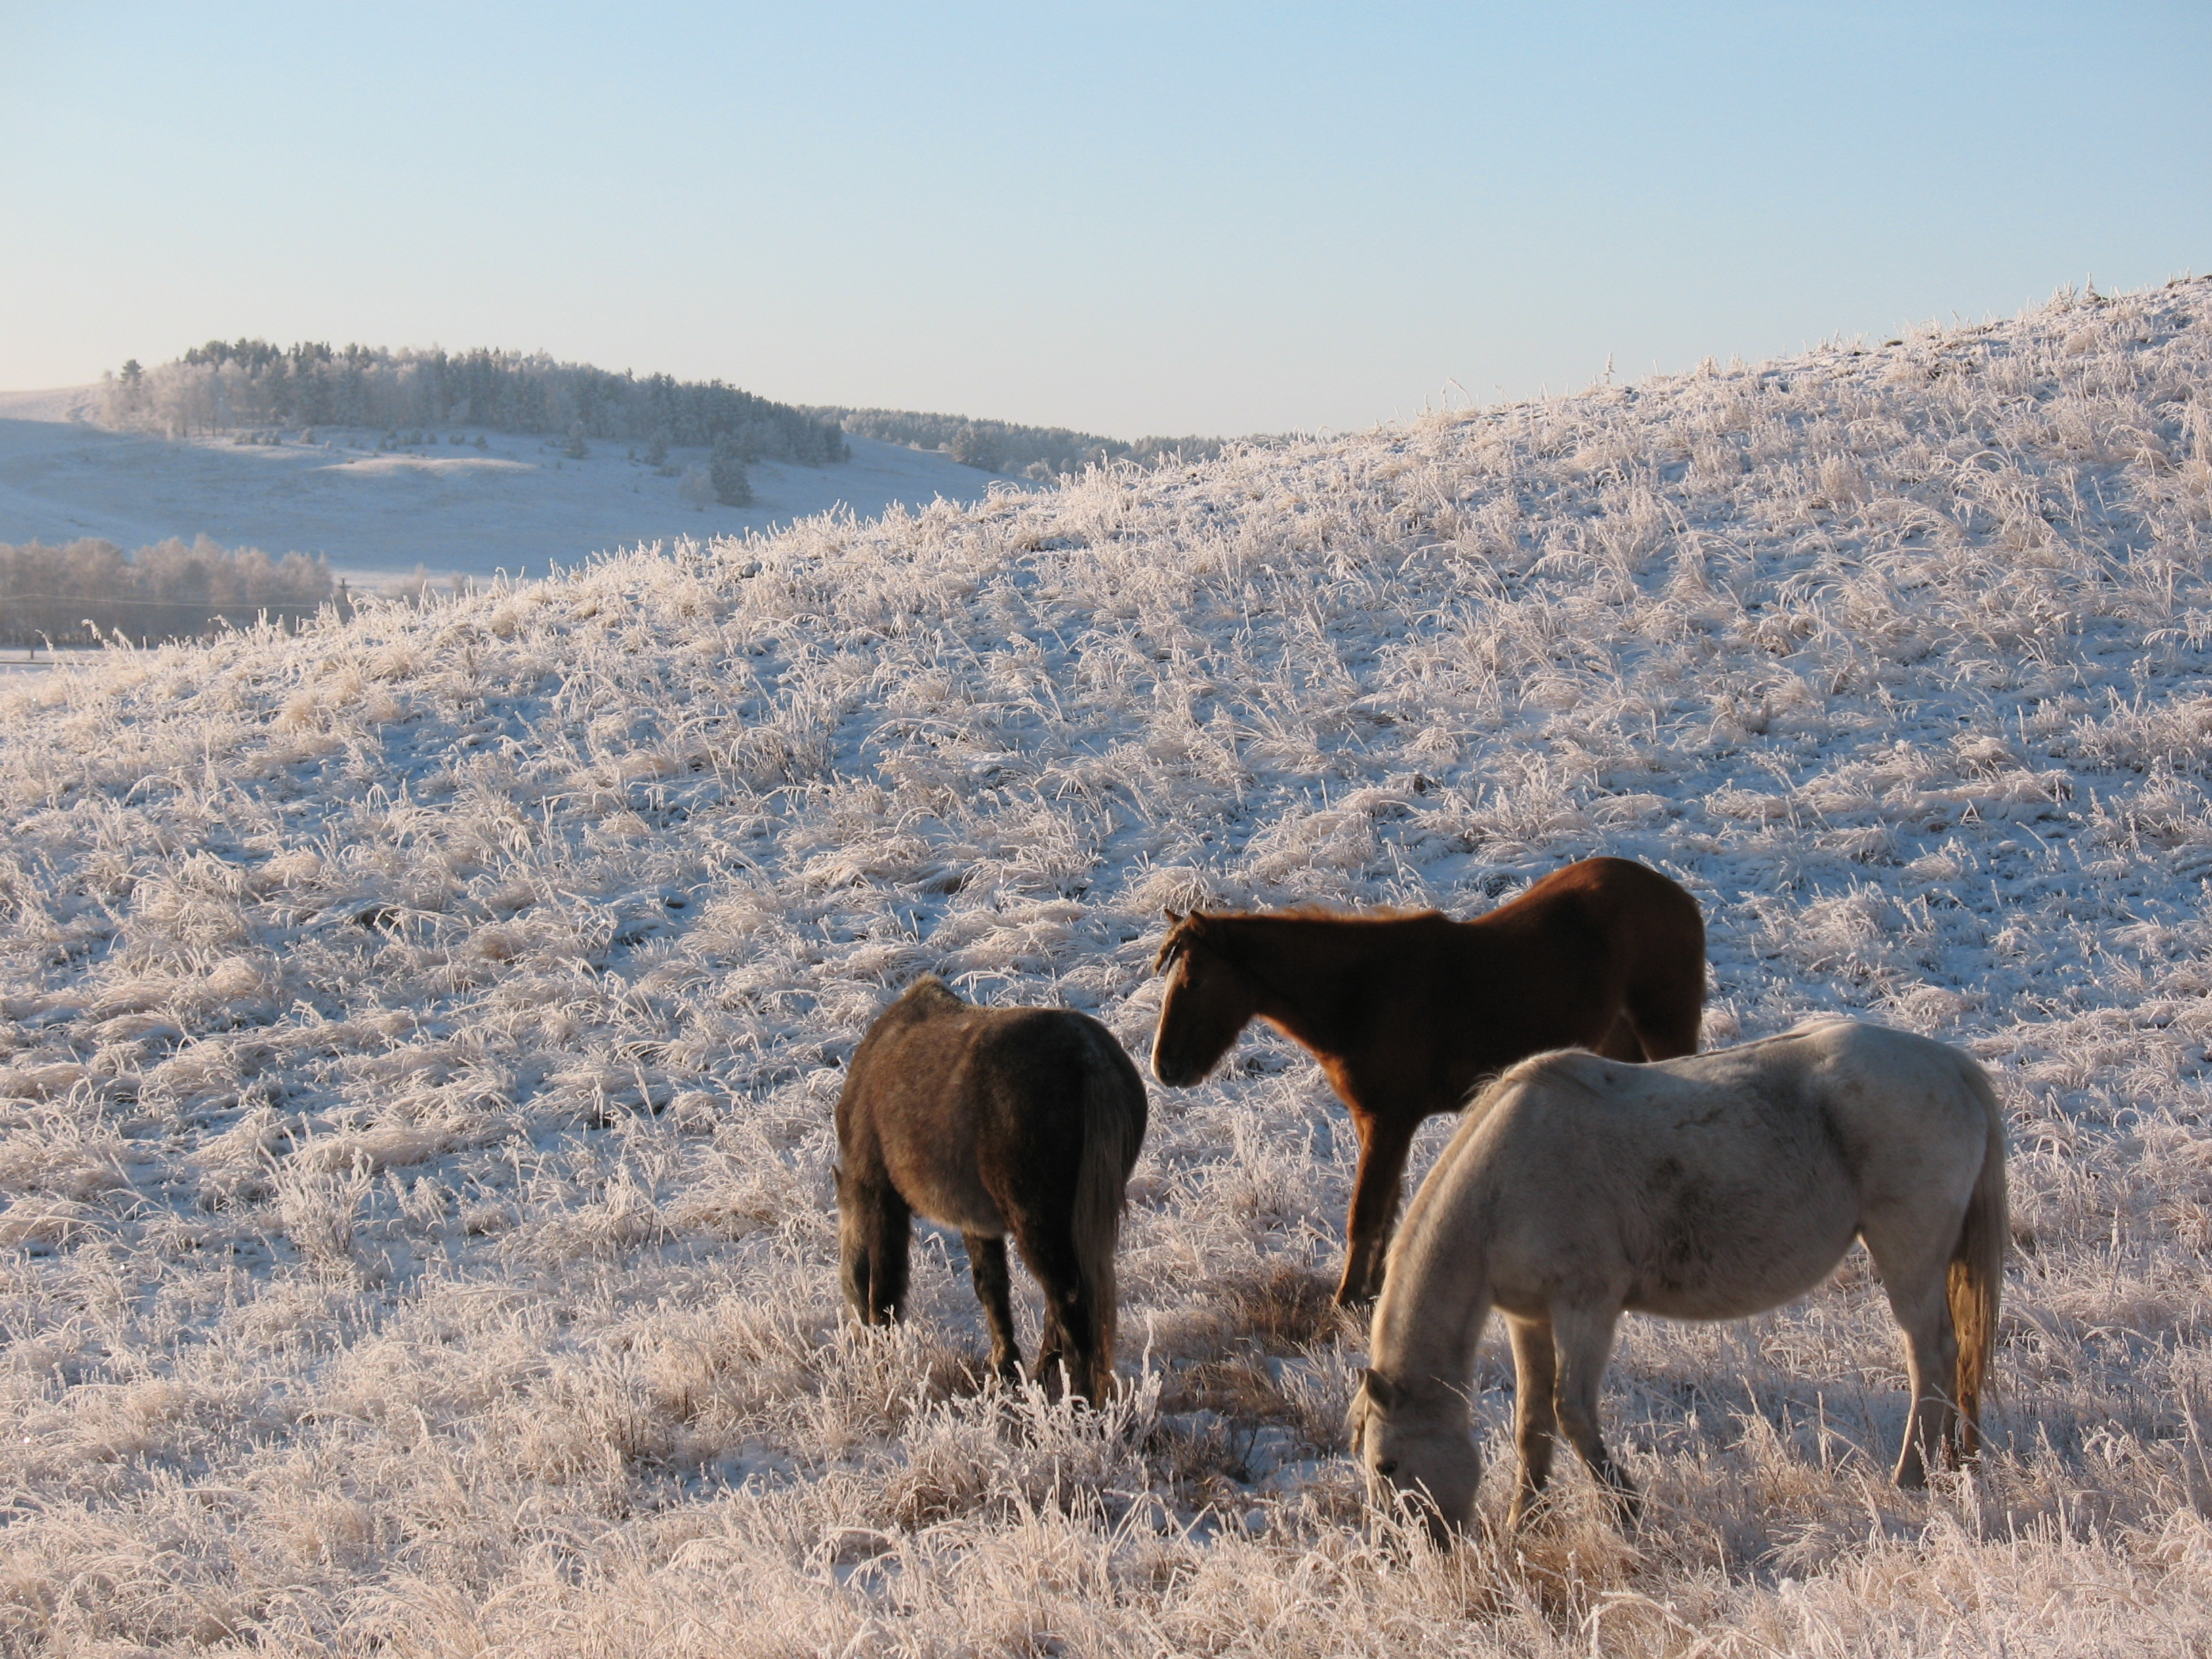 110944 download wallpaper Animals, Horses, Herd, Horse, Mare, Winter, Pasture, Frost screensavers and pictures for free